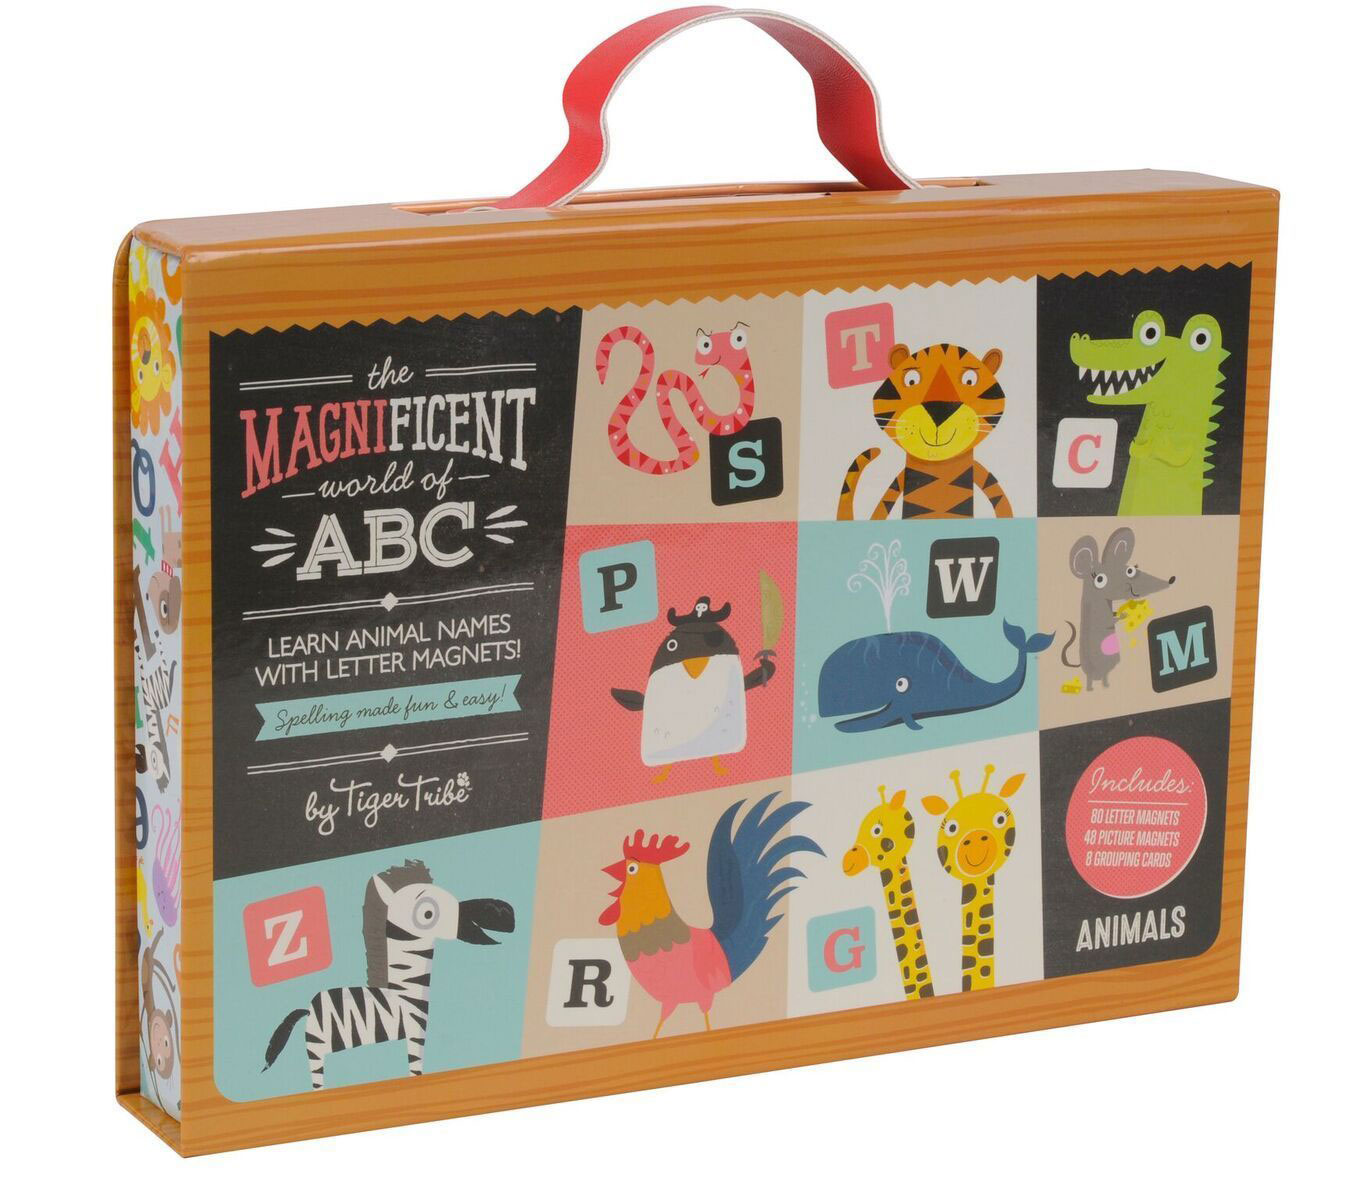 Magnificent World of ABC Magnetic set by Tiger Tribe - Animals ~ spelling made fun & easy